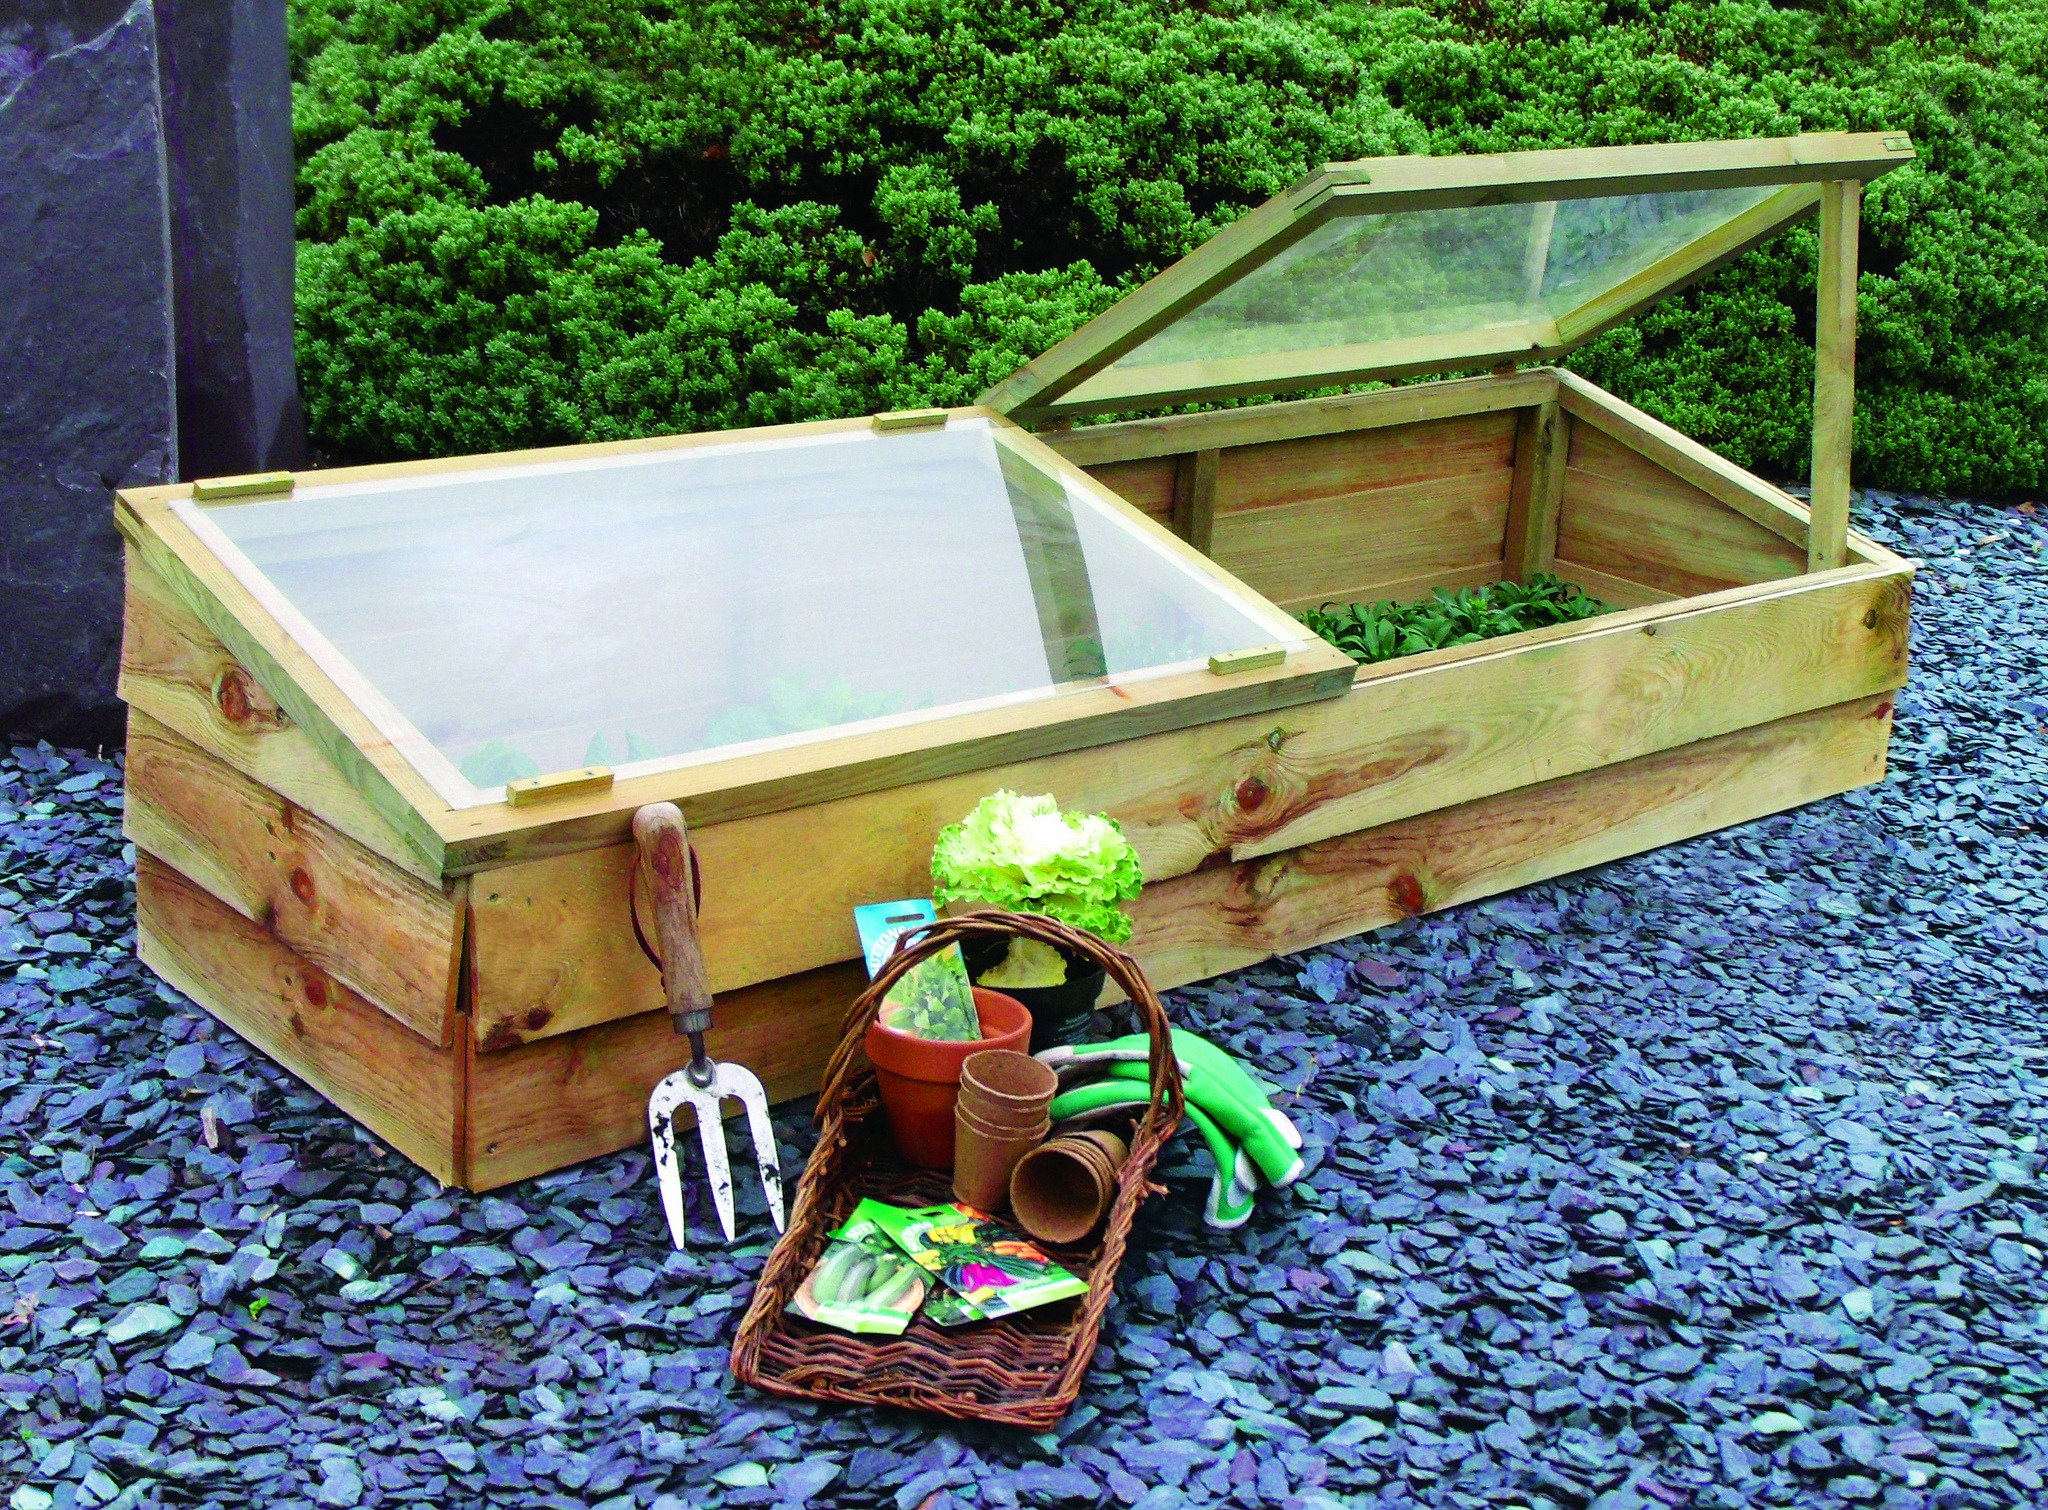 Let There Be Light: How To Build a Gardening Cold Frame